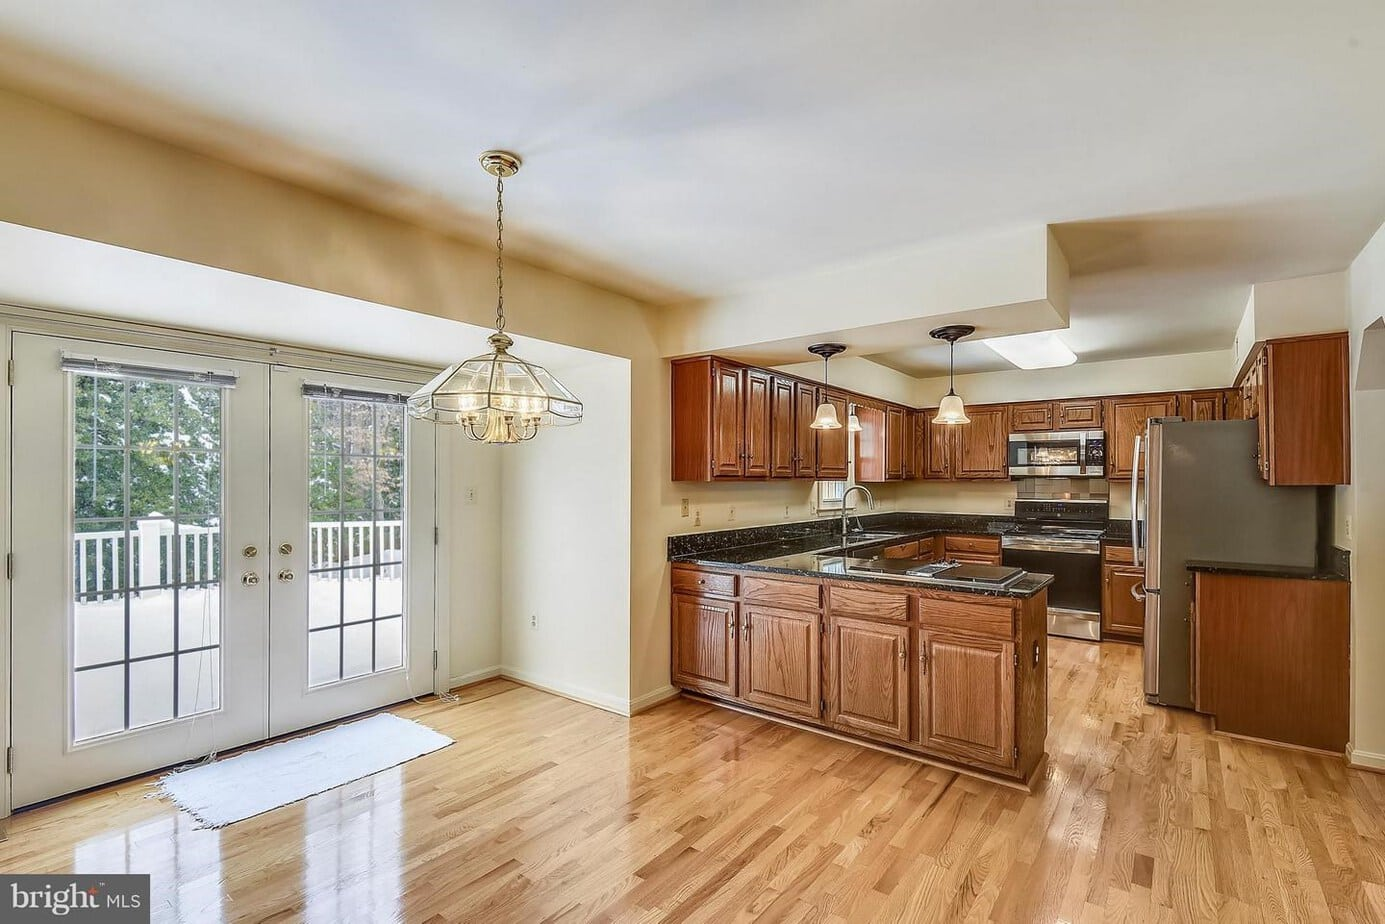 11696 HOLLYVIEW DRIVE, GREAT FALLS, VA 22066 family room and kitchen